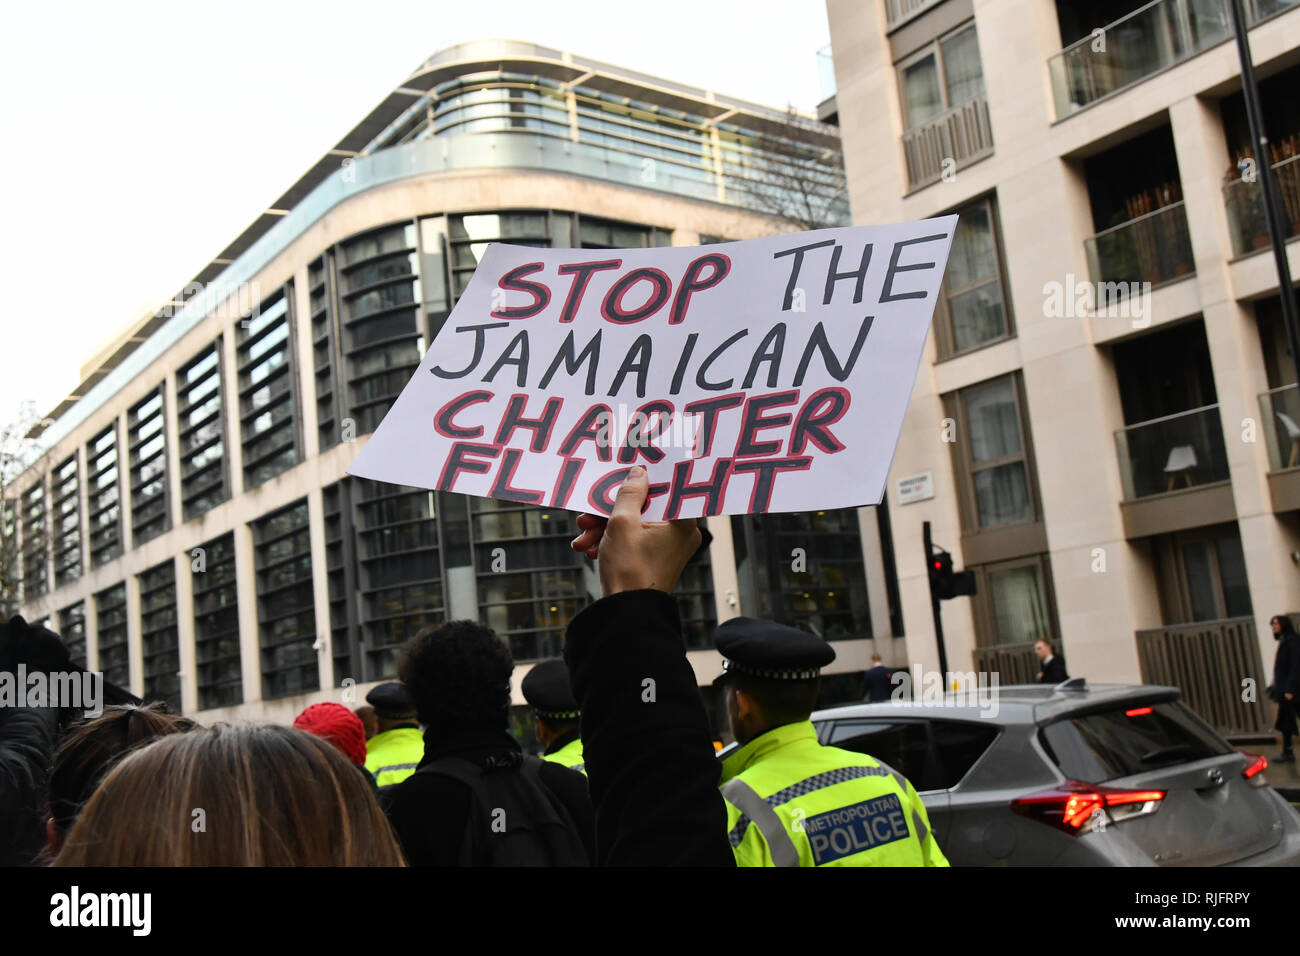 London, UK. 6th February, 2019. Sister Not Cister UK protests demonstration Justice for #Stansted15! Stop the Jamaica Charter Flight! with heavy police present Stop the racist hostile environment drop a banner on Lambeth bridge and march to the Home Office demand to free the #Stansted15 will be Sentencing non-violent peaceful direct action, all of them charged with a terrrorism-related offence that carries a maximum life prison sentence at Chelmsford Crown Court of and Stop deportation, London, UK. 6 Feb 2019. Credit: Picture Capital/Alamy Live News - Stock Image